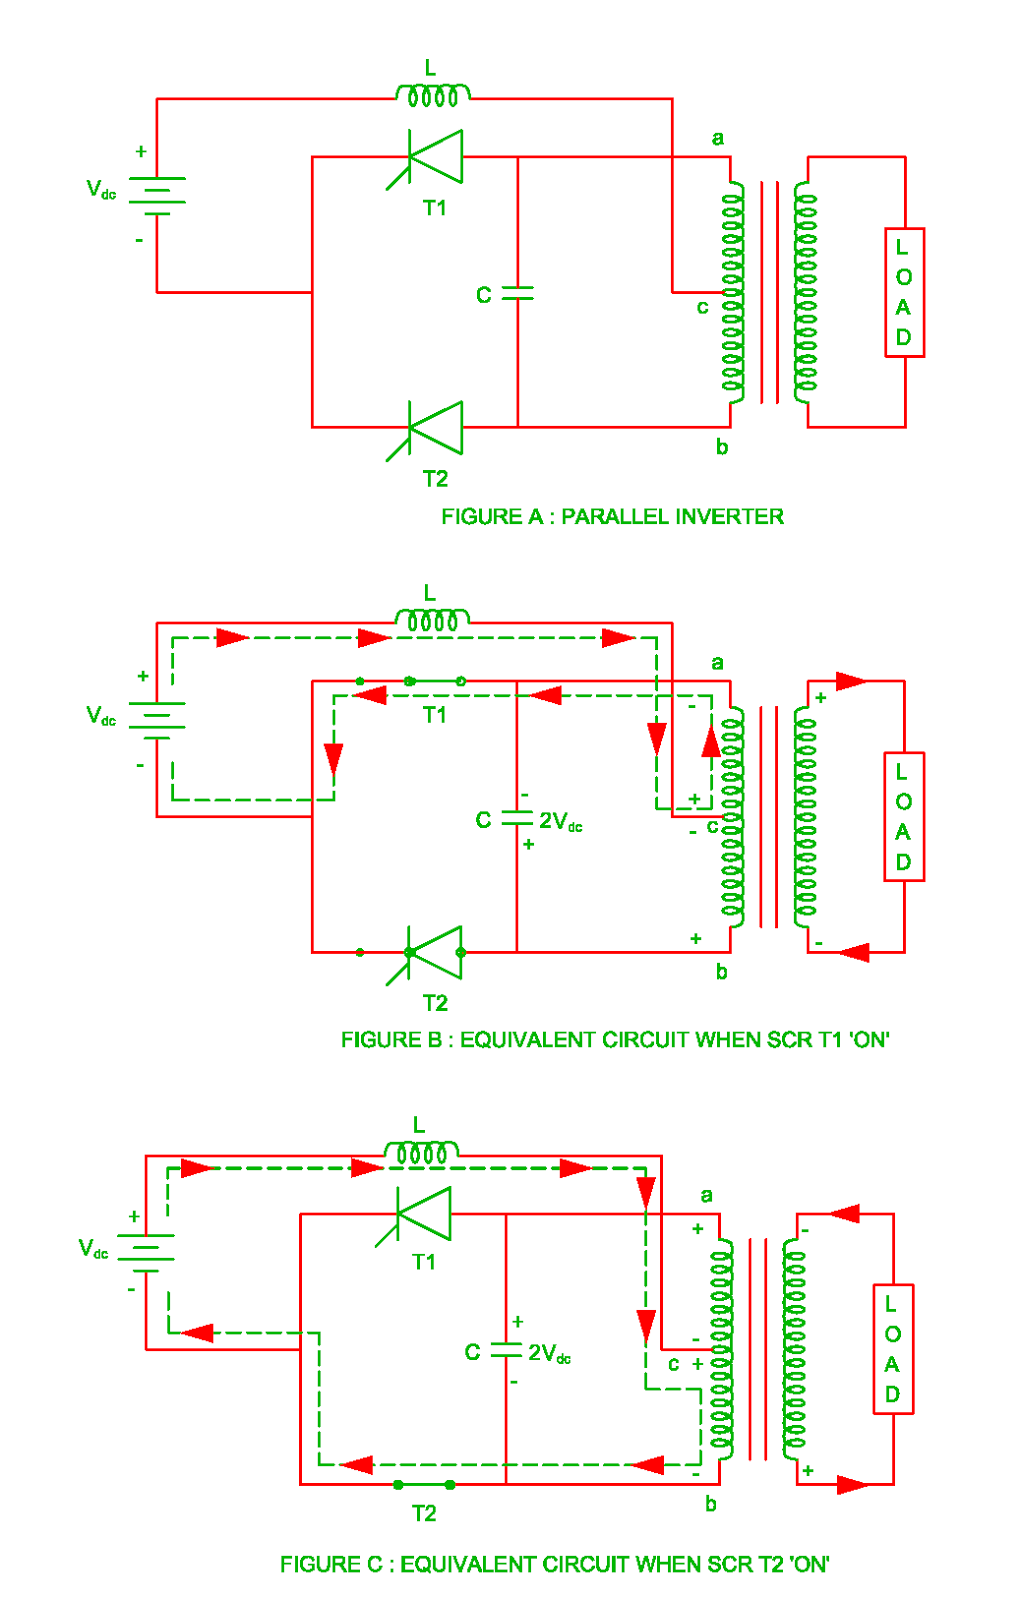 Cool Parallel Inverter Or Parallel Inverter With Feedback Diodes Wiring 101 Capemaxxcnl